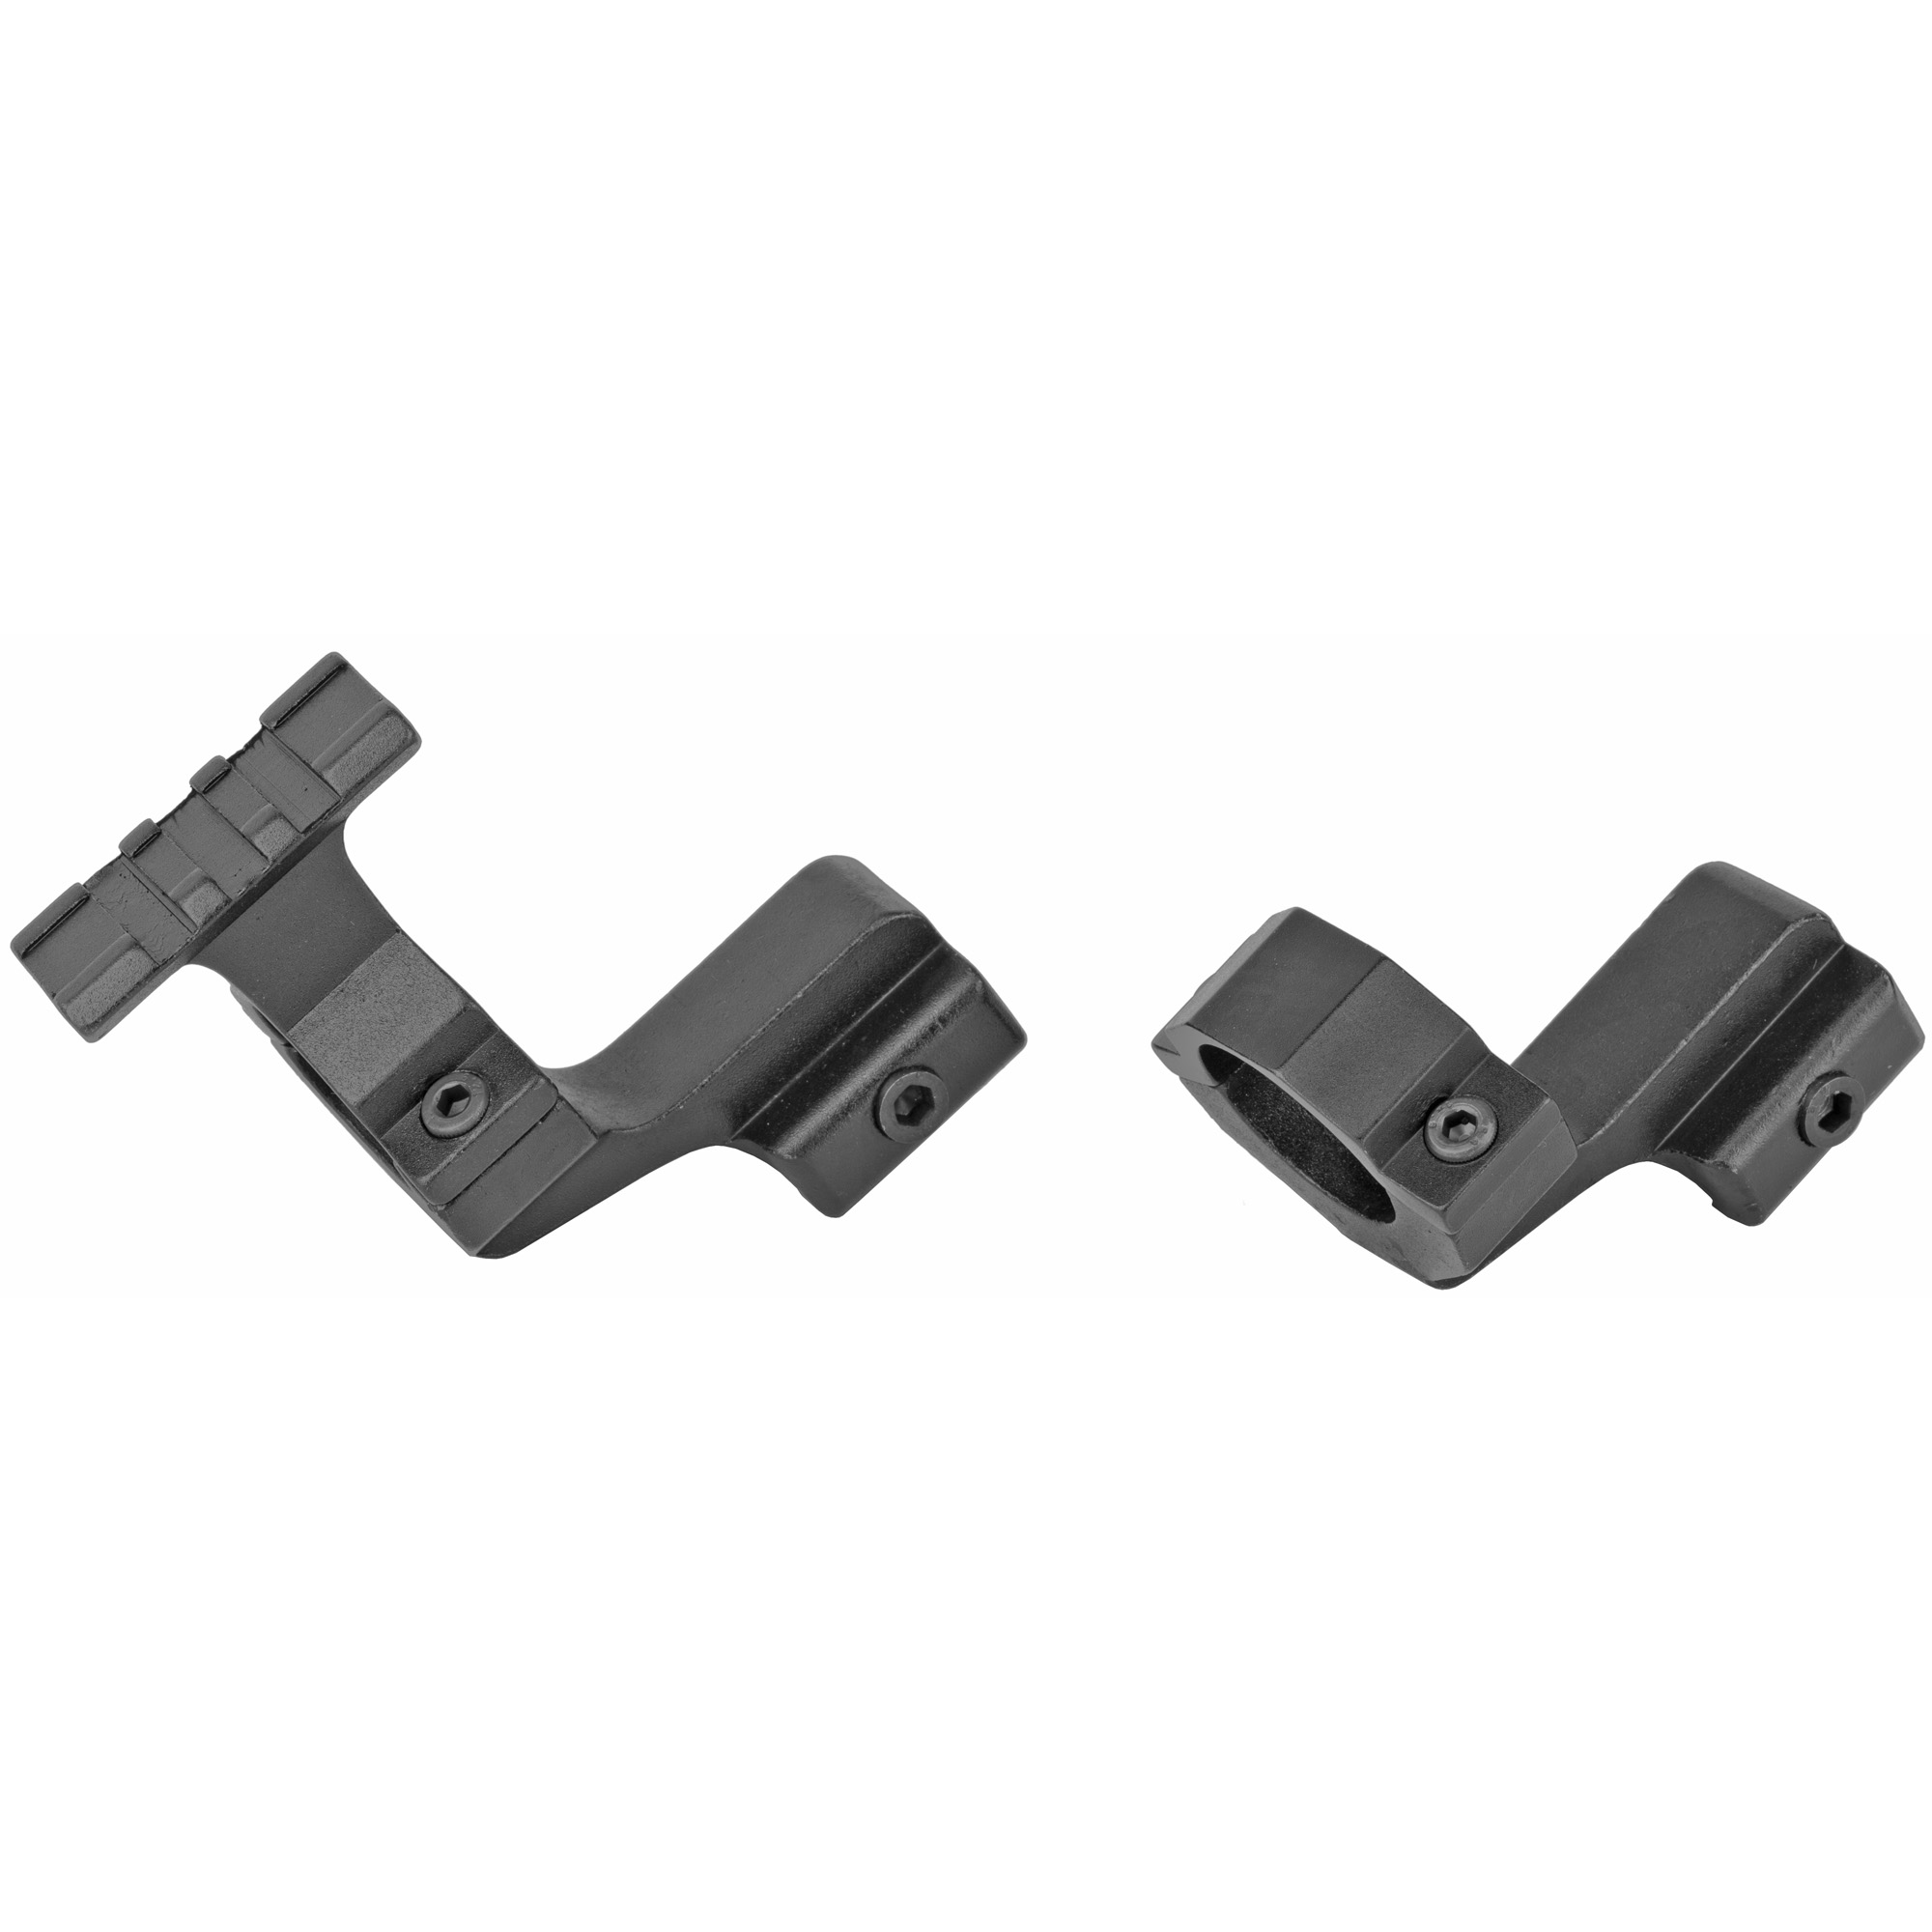 "Bsa 2pc Scope Rail Mnt 1"" Blk"